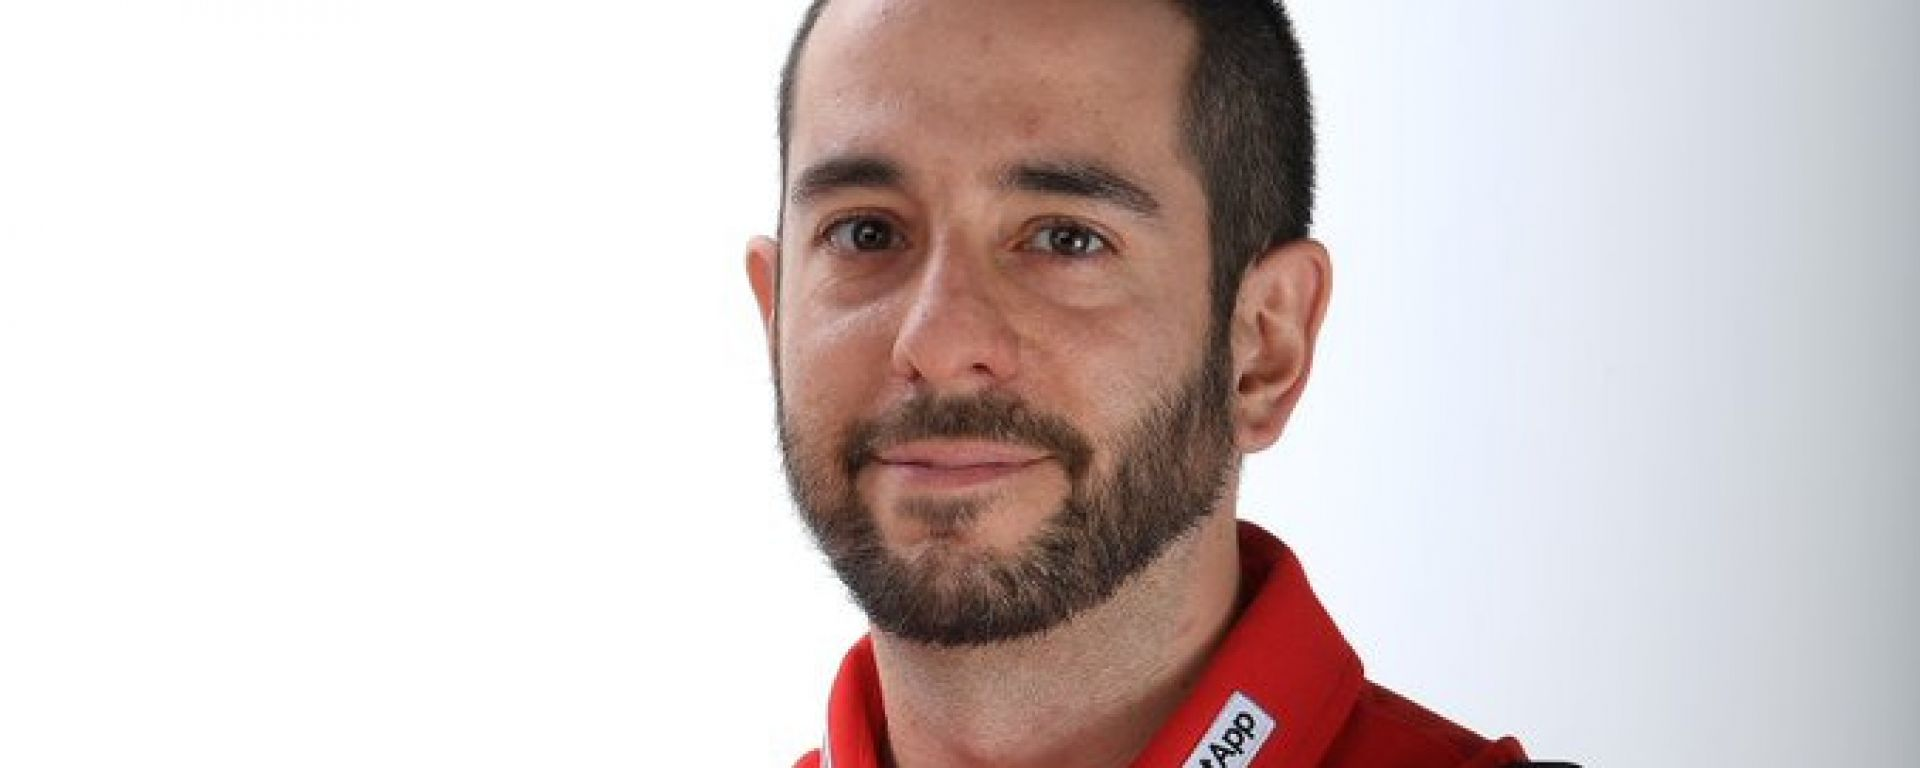 Lutto in Ducati, scomparso a Brno l'as Luca Semprini